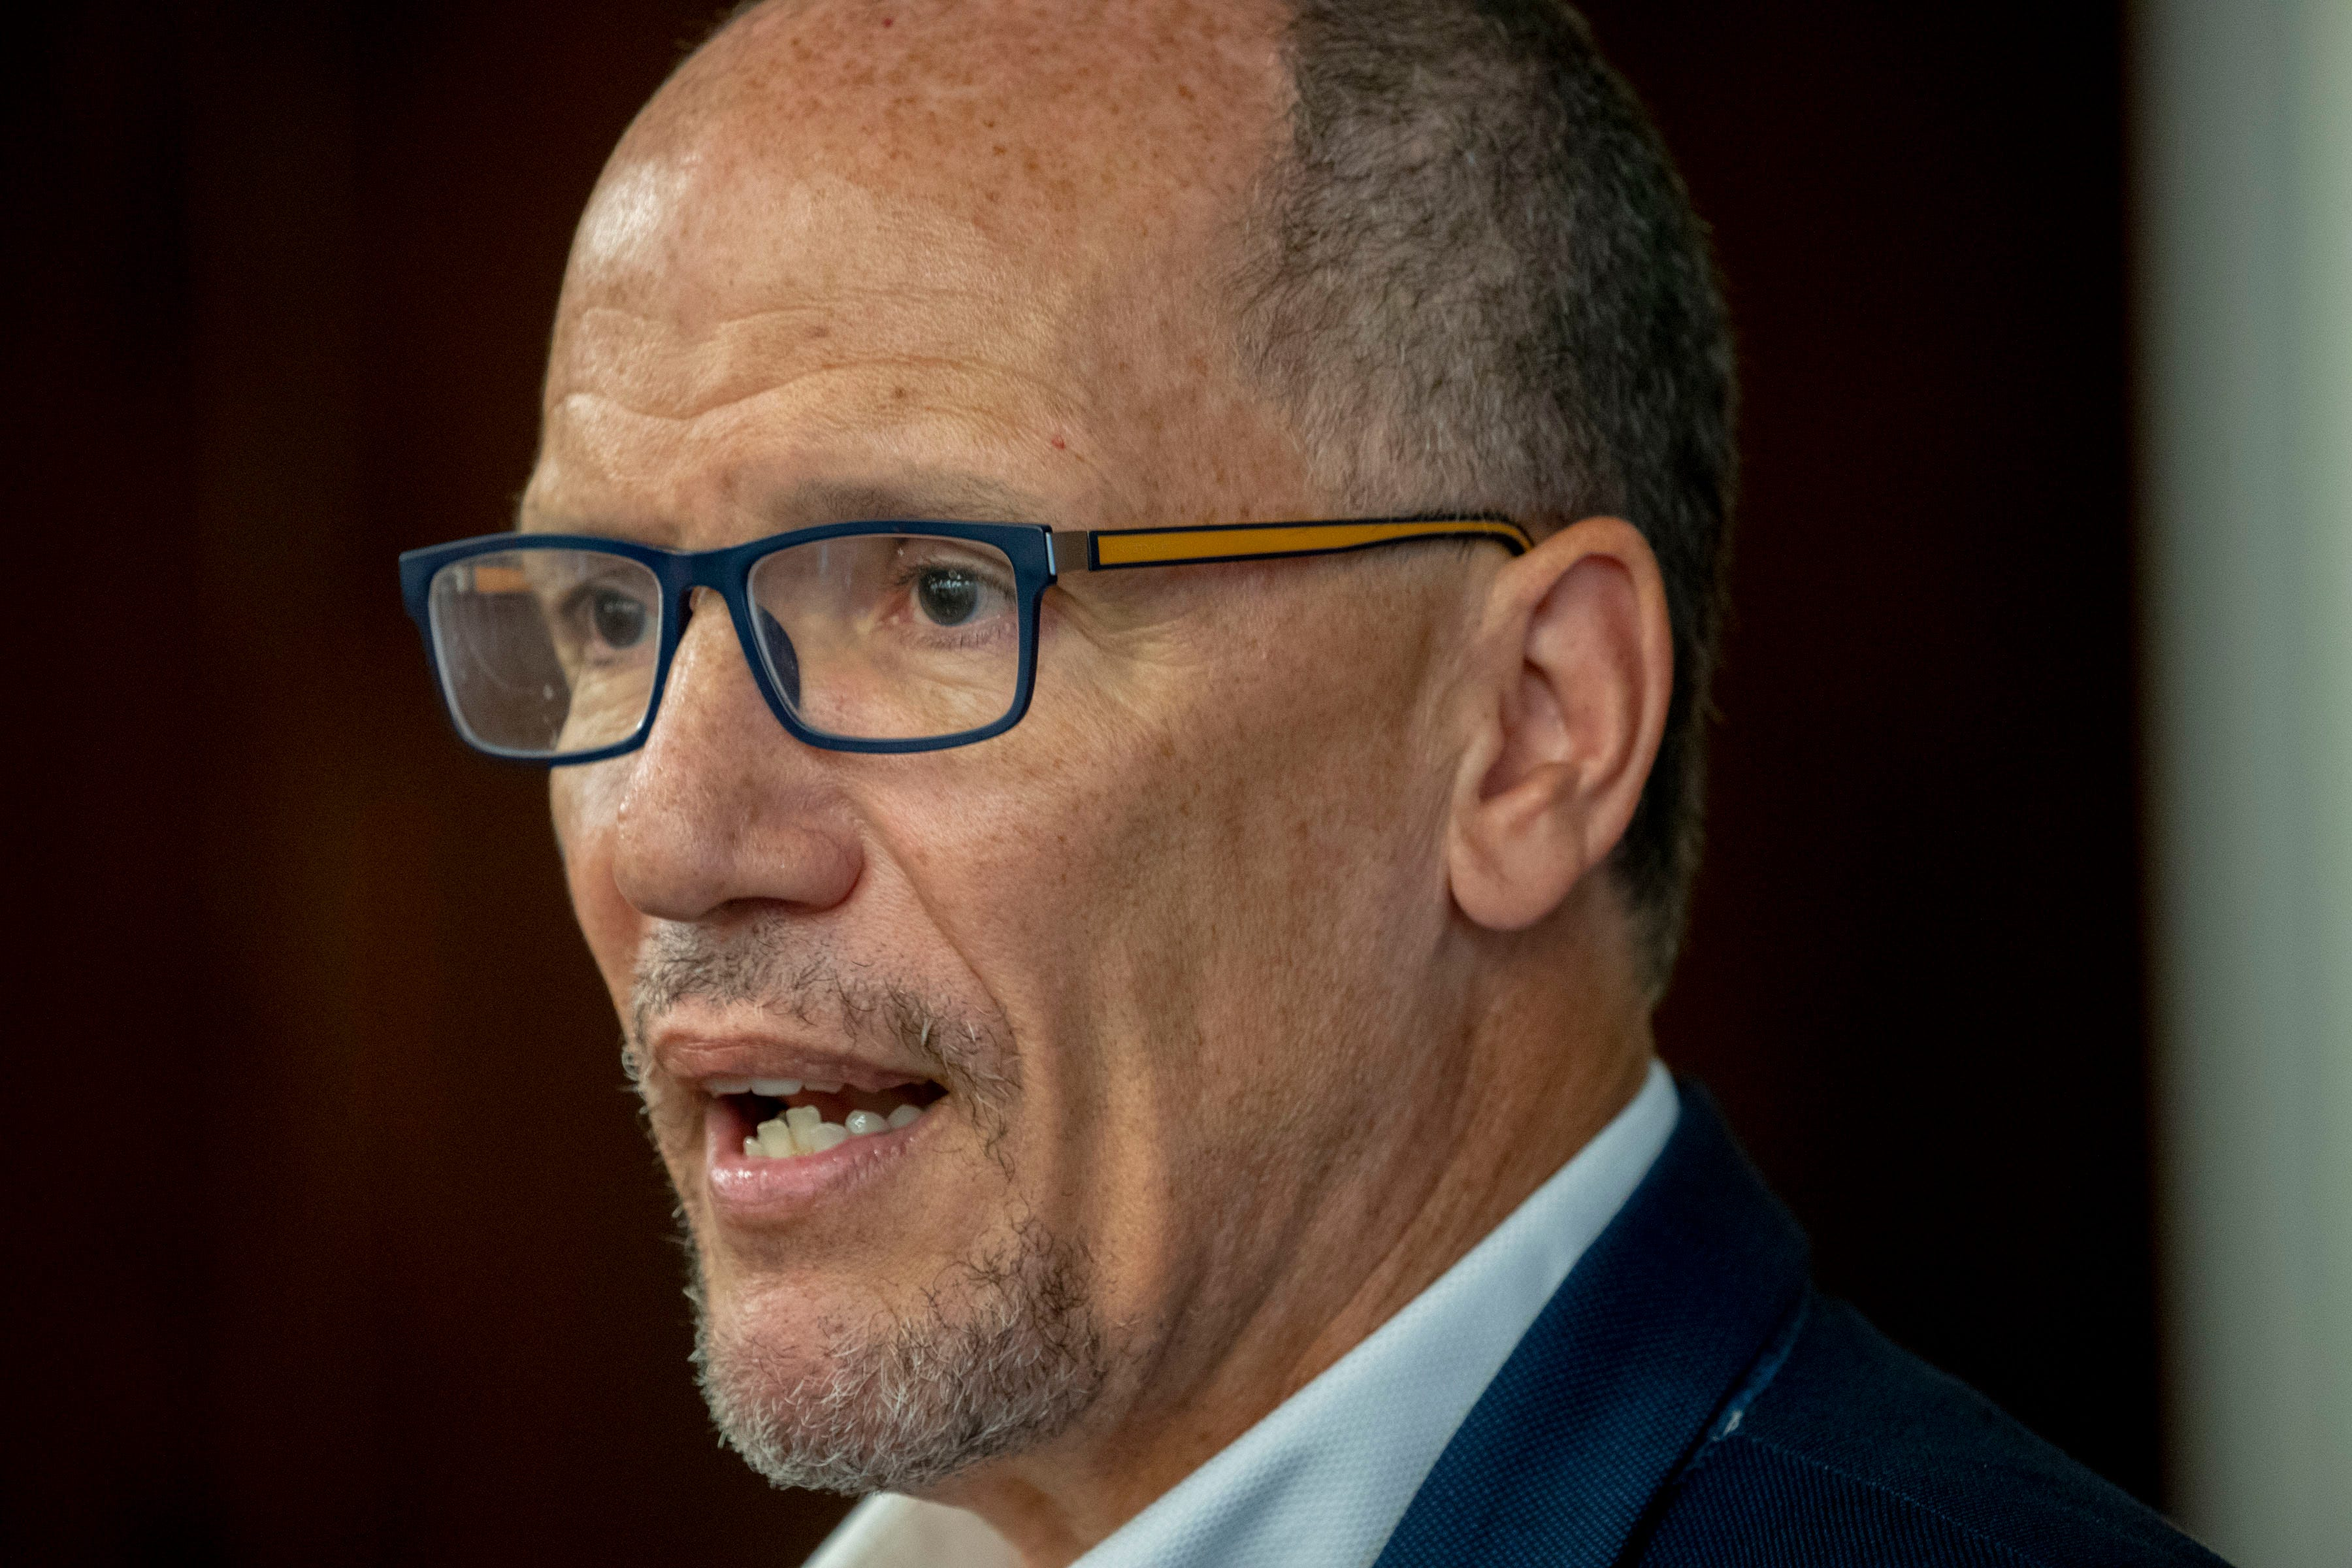 Here's how the DNC chair says Democrats will flip Arizona blue in 2020